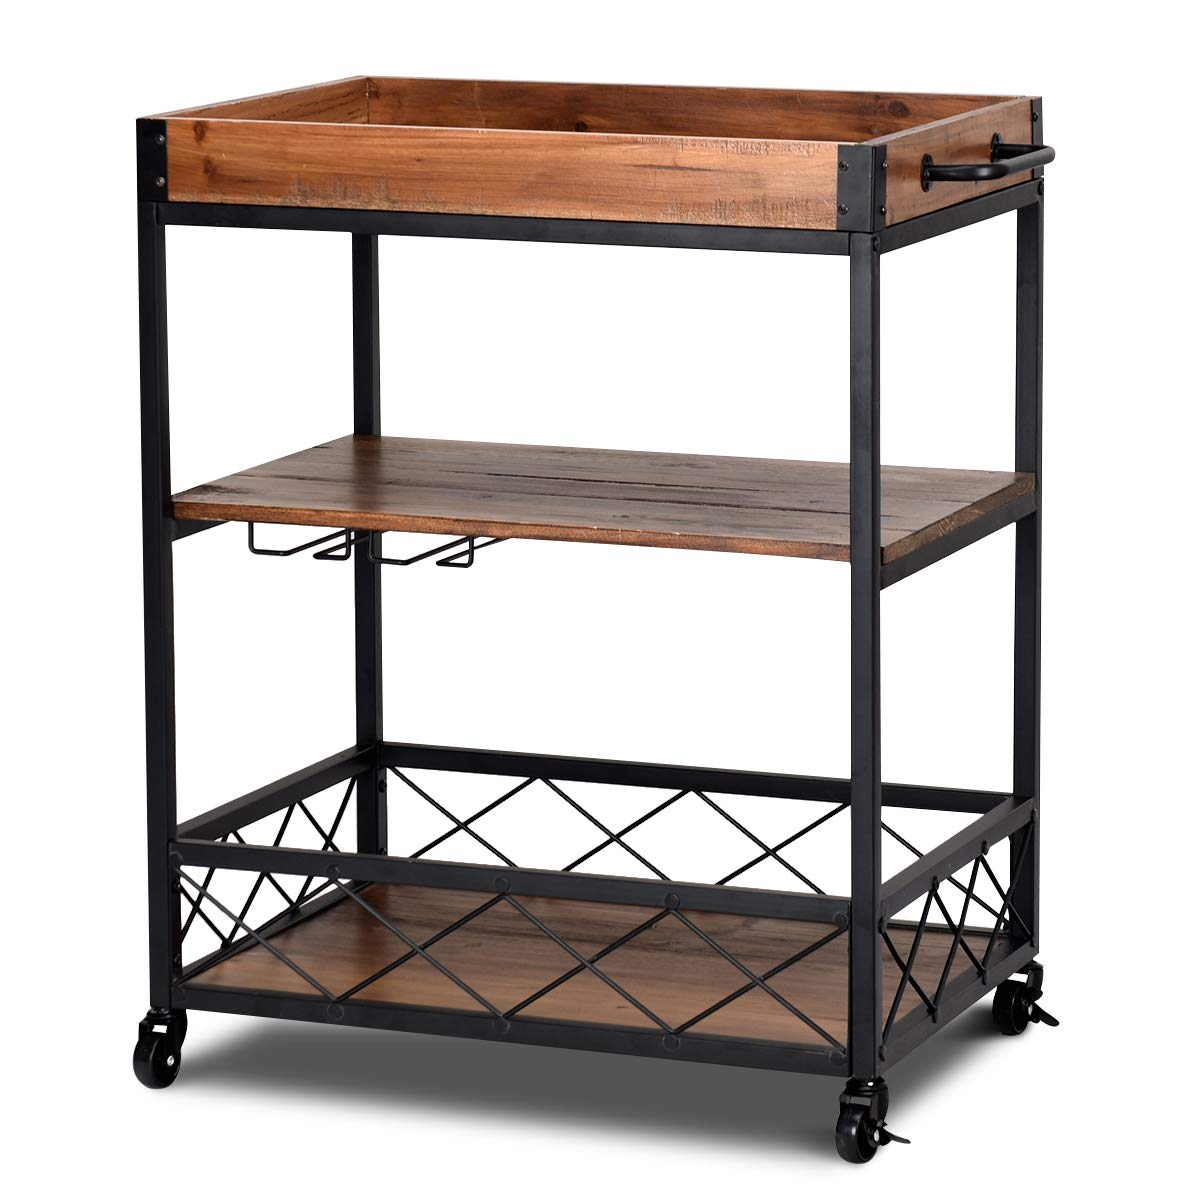 Giantex Kitchen Trolley Cart Island Rolling Serving Carts Utility Cart 3 Tier Storage Shelf with Glass Holde, Handle Racks, Lockable Caster Wheels Kitchen Carts Islands w/Removable Wood Box Container by Giantex (Image #2)